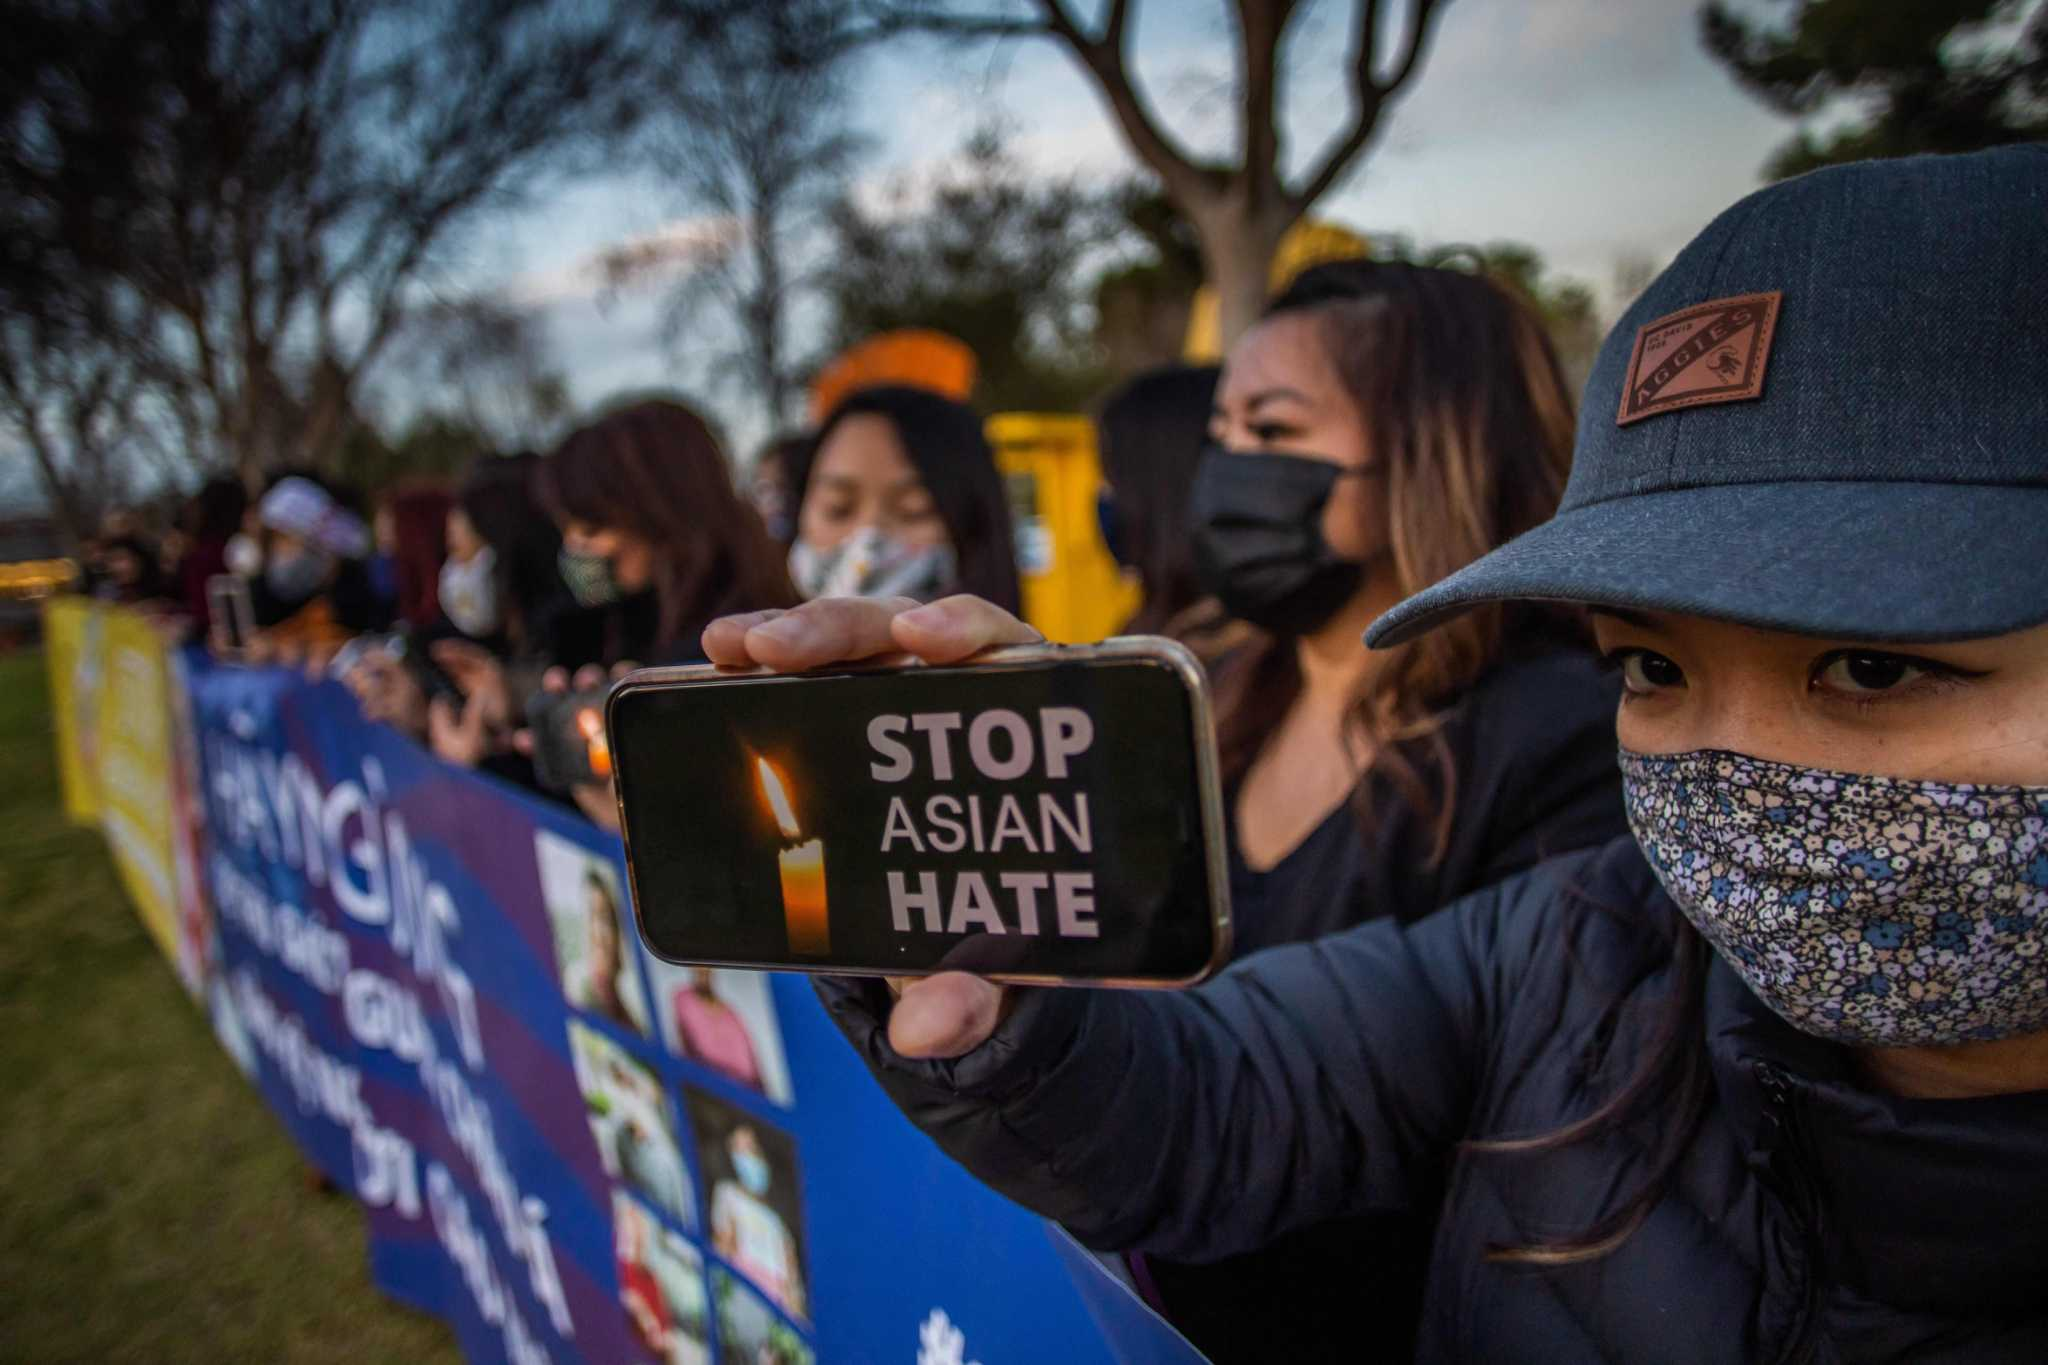 www.houstonchronicle.com: Opinion: I'll be scared until we confront the anti-Asian roots of our country